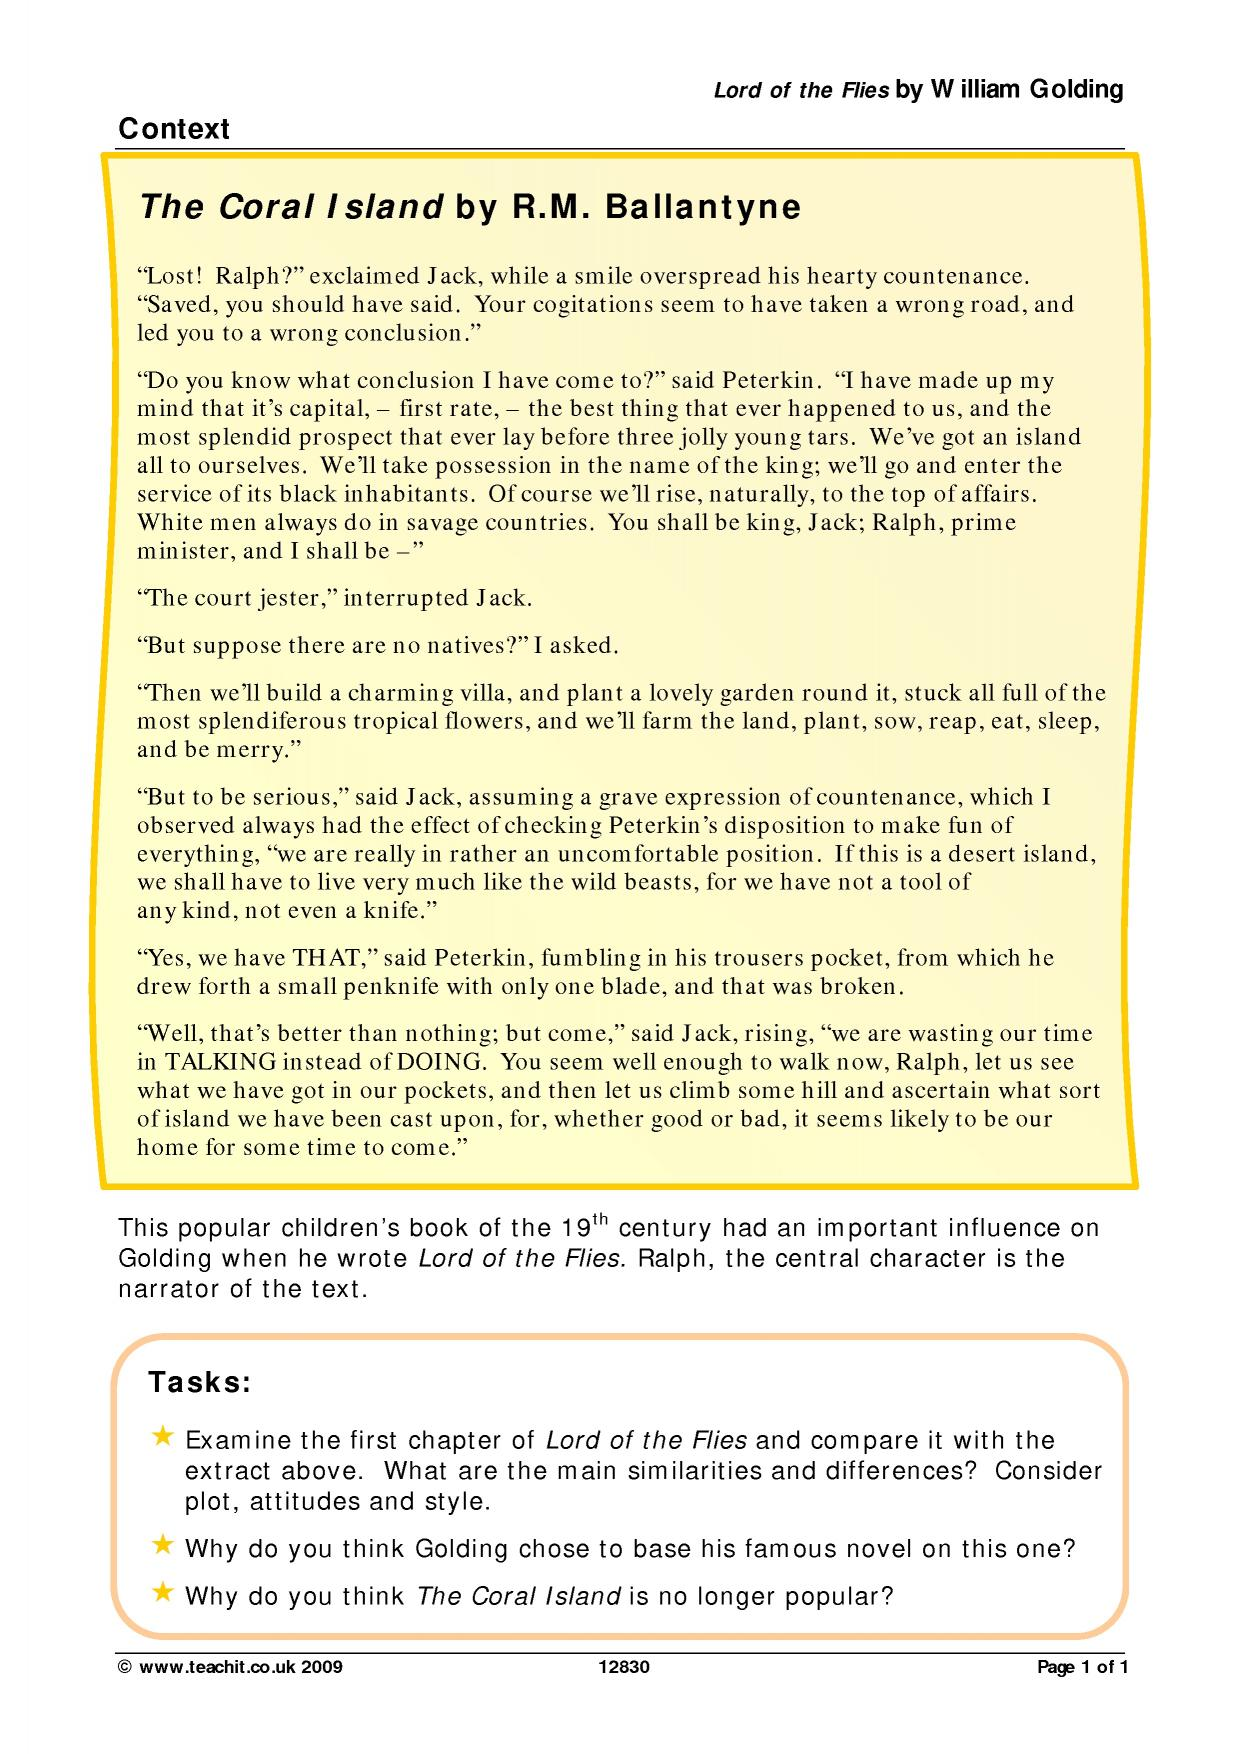 worksheet The Road Not Taken Worksheet lord of the flies by william golding ks4 prose key stage 4 preview